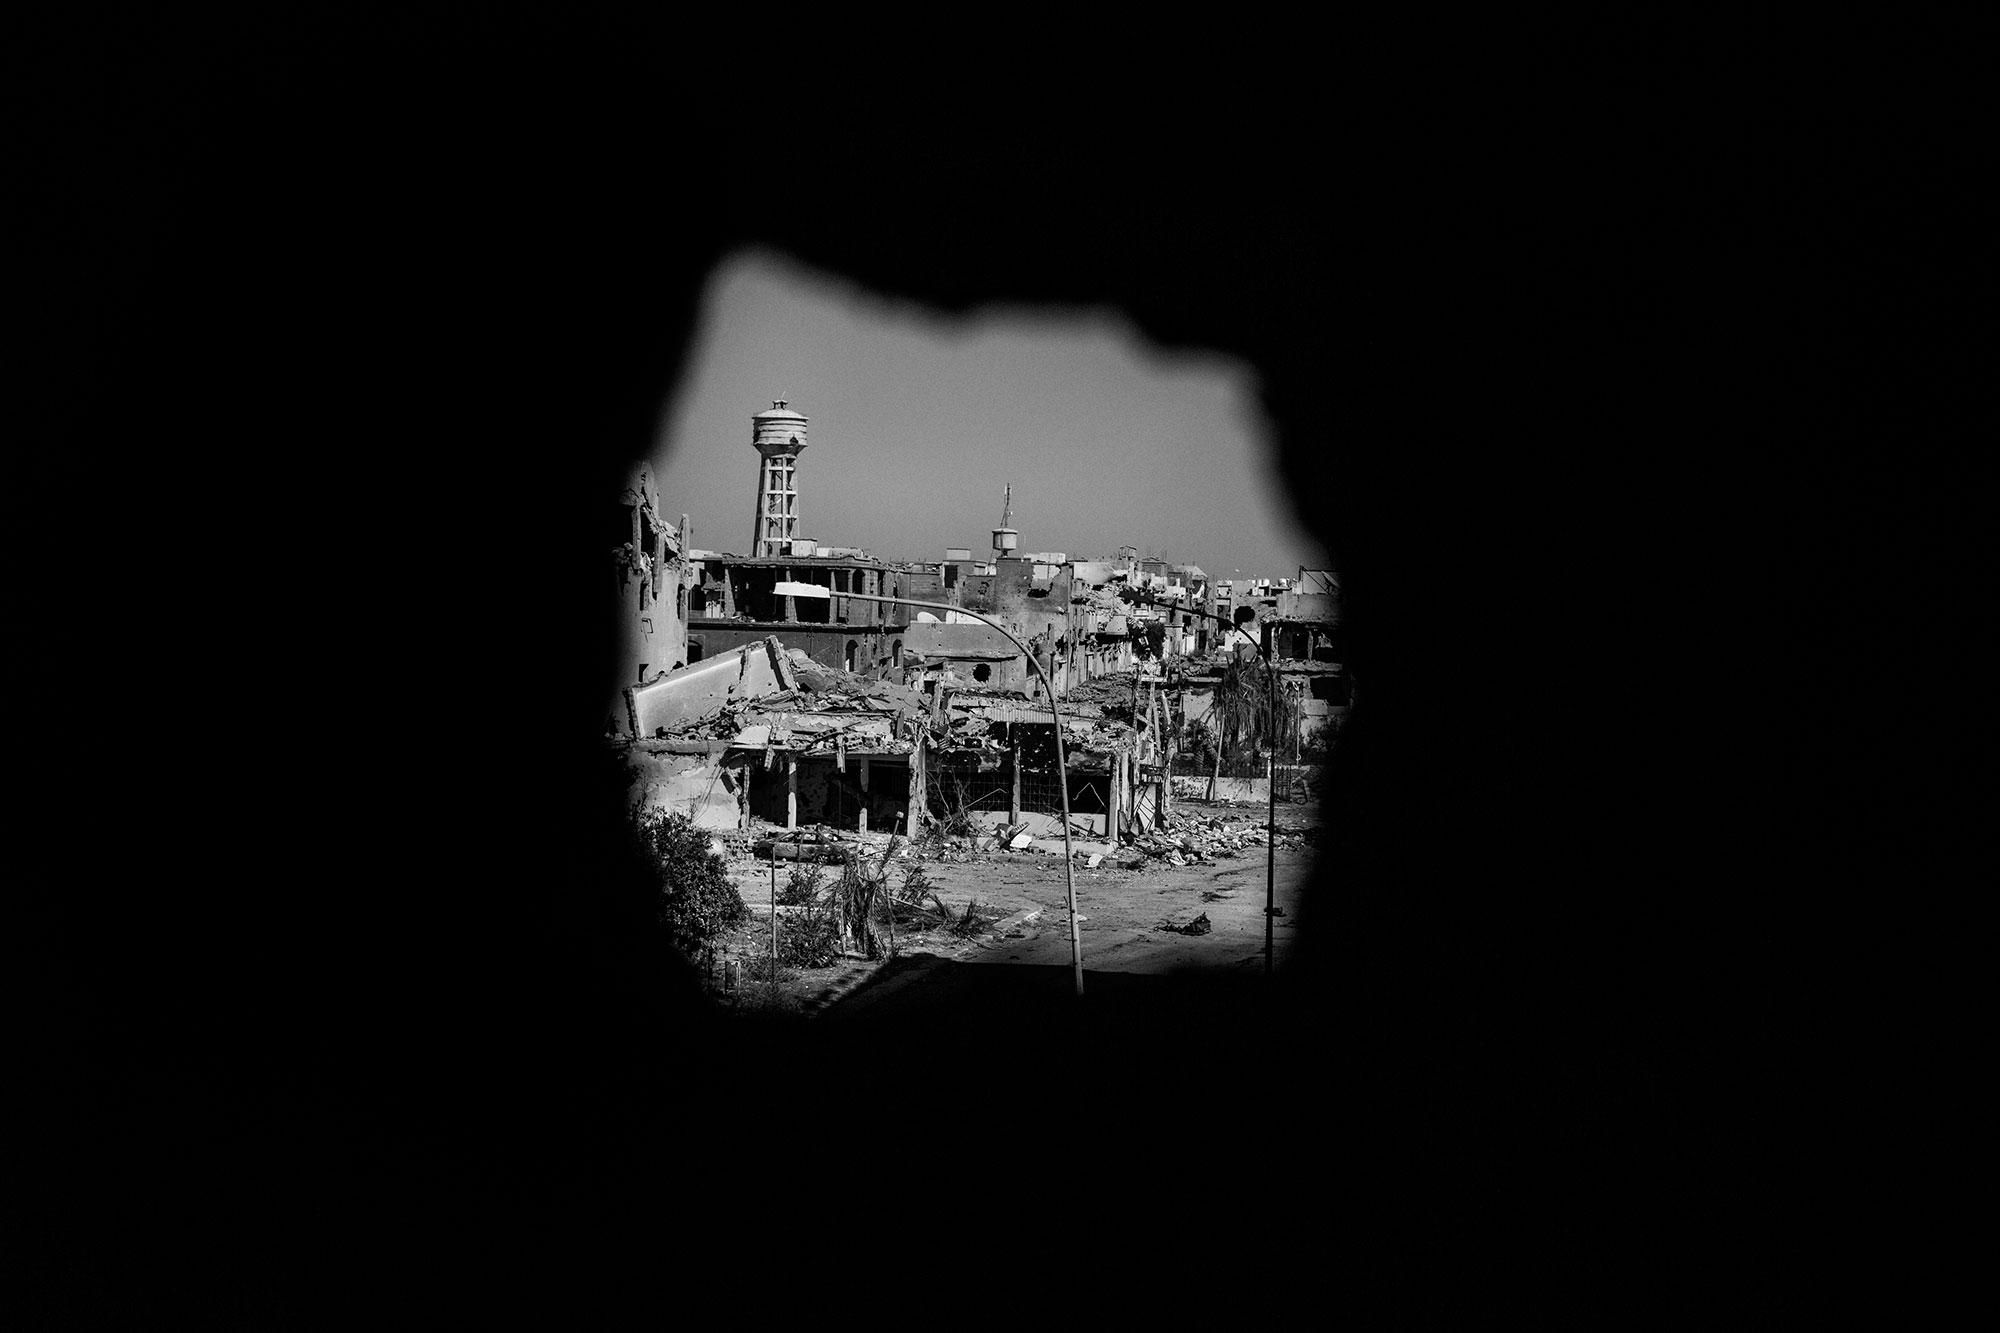 <p>View of an area controlled by Islamic State (ISIS) militants, seen through a sniper hole in Sirte, Libya, in September 2016. (Photo: Manu Brabo/MeMo for Yahoo News) </p>